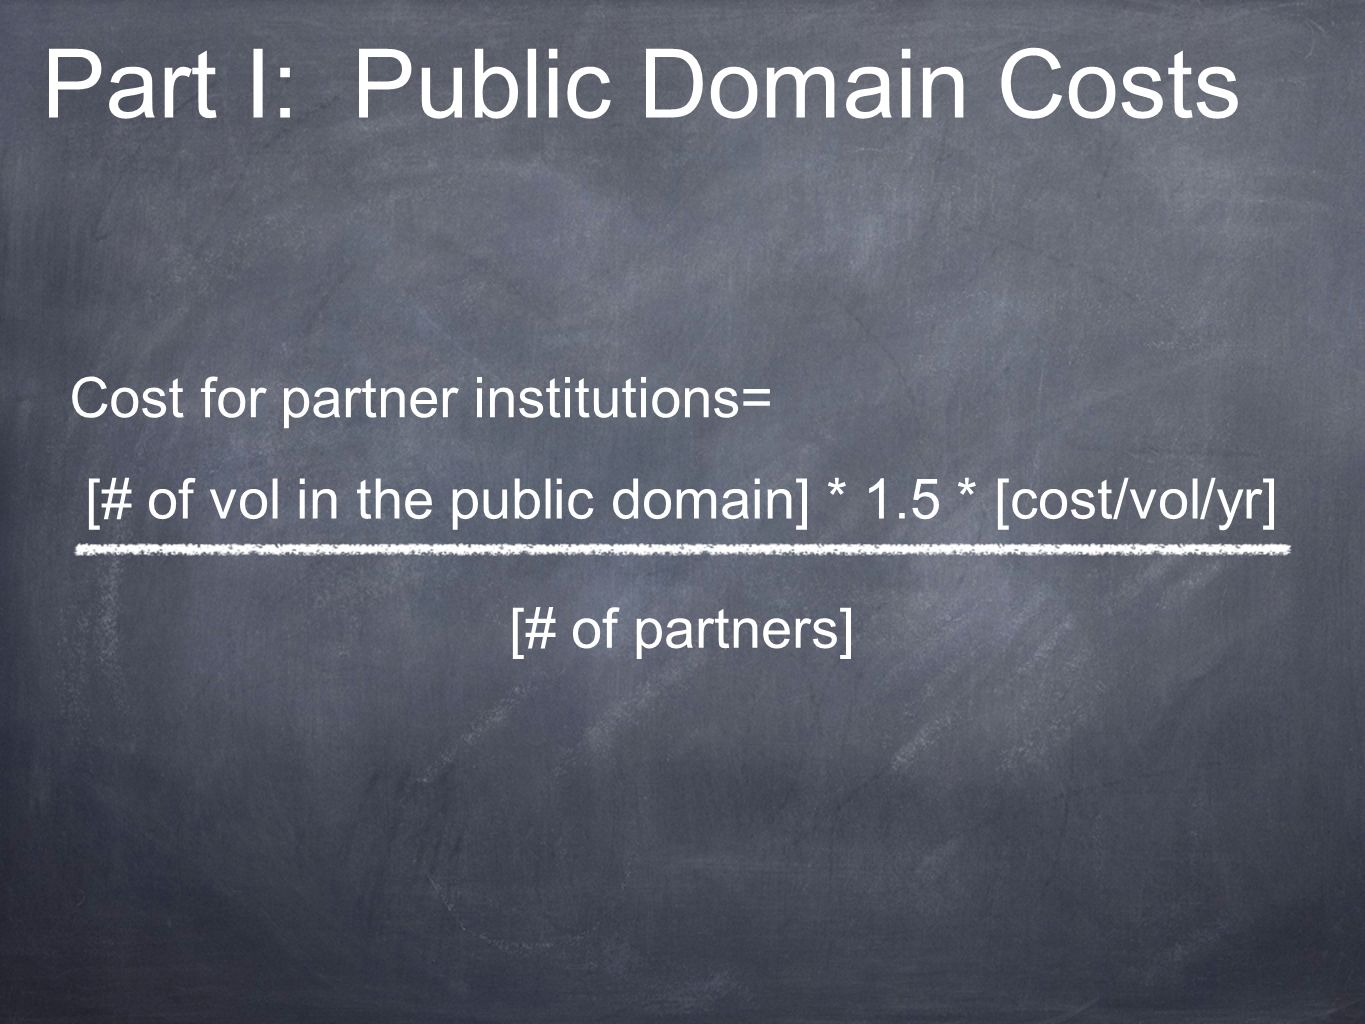 Part I: Public Domain Costs